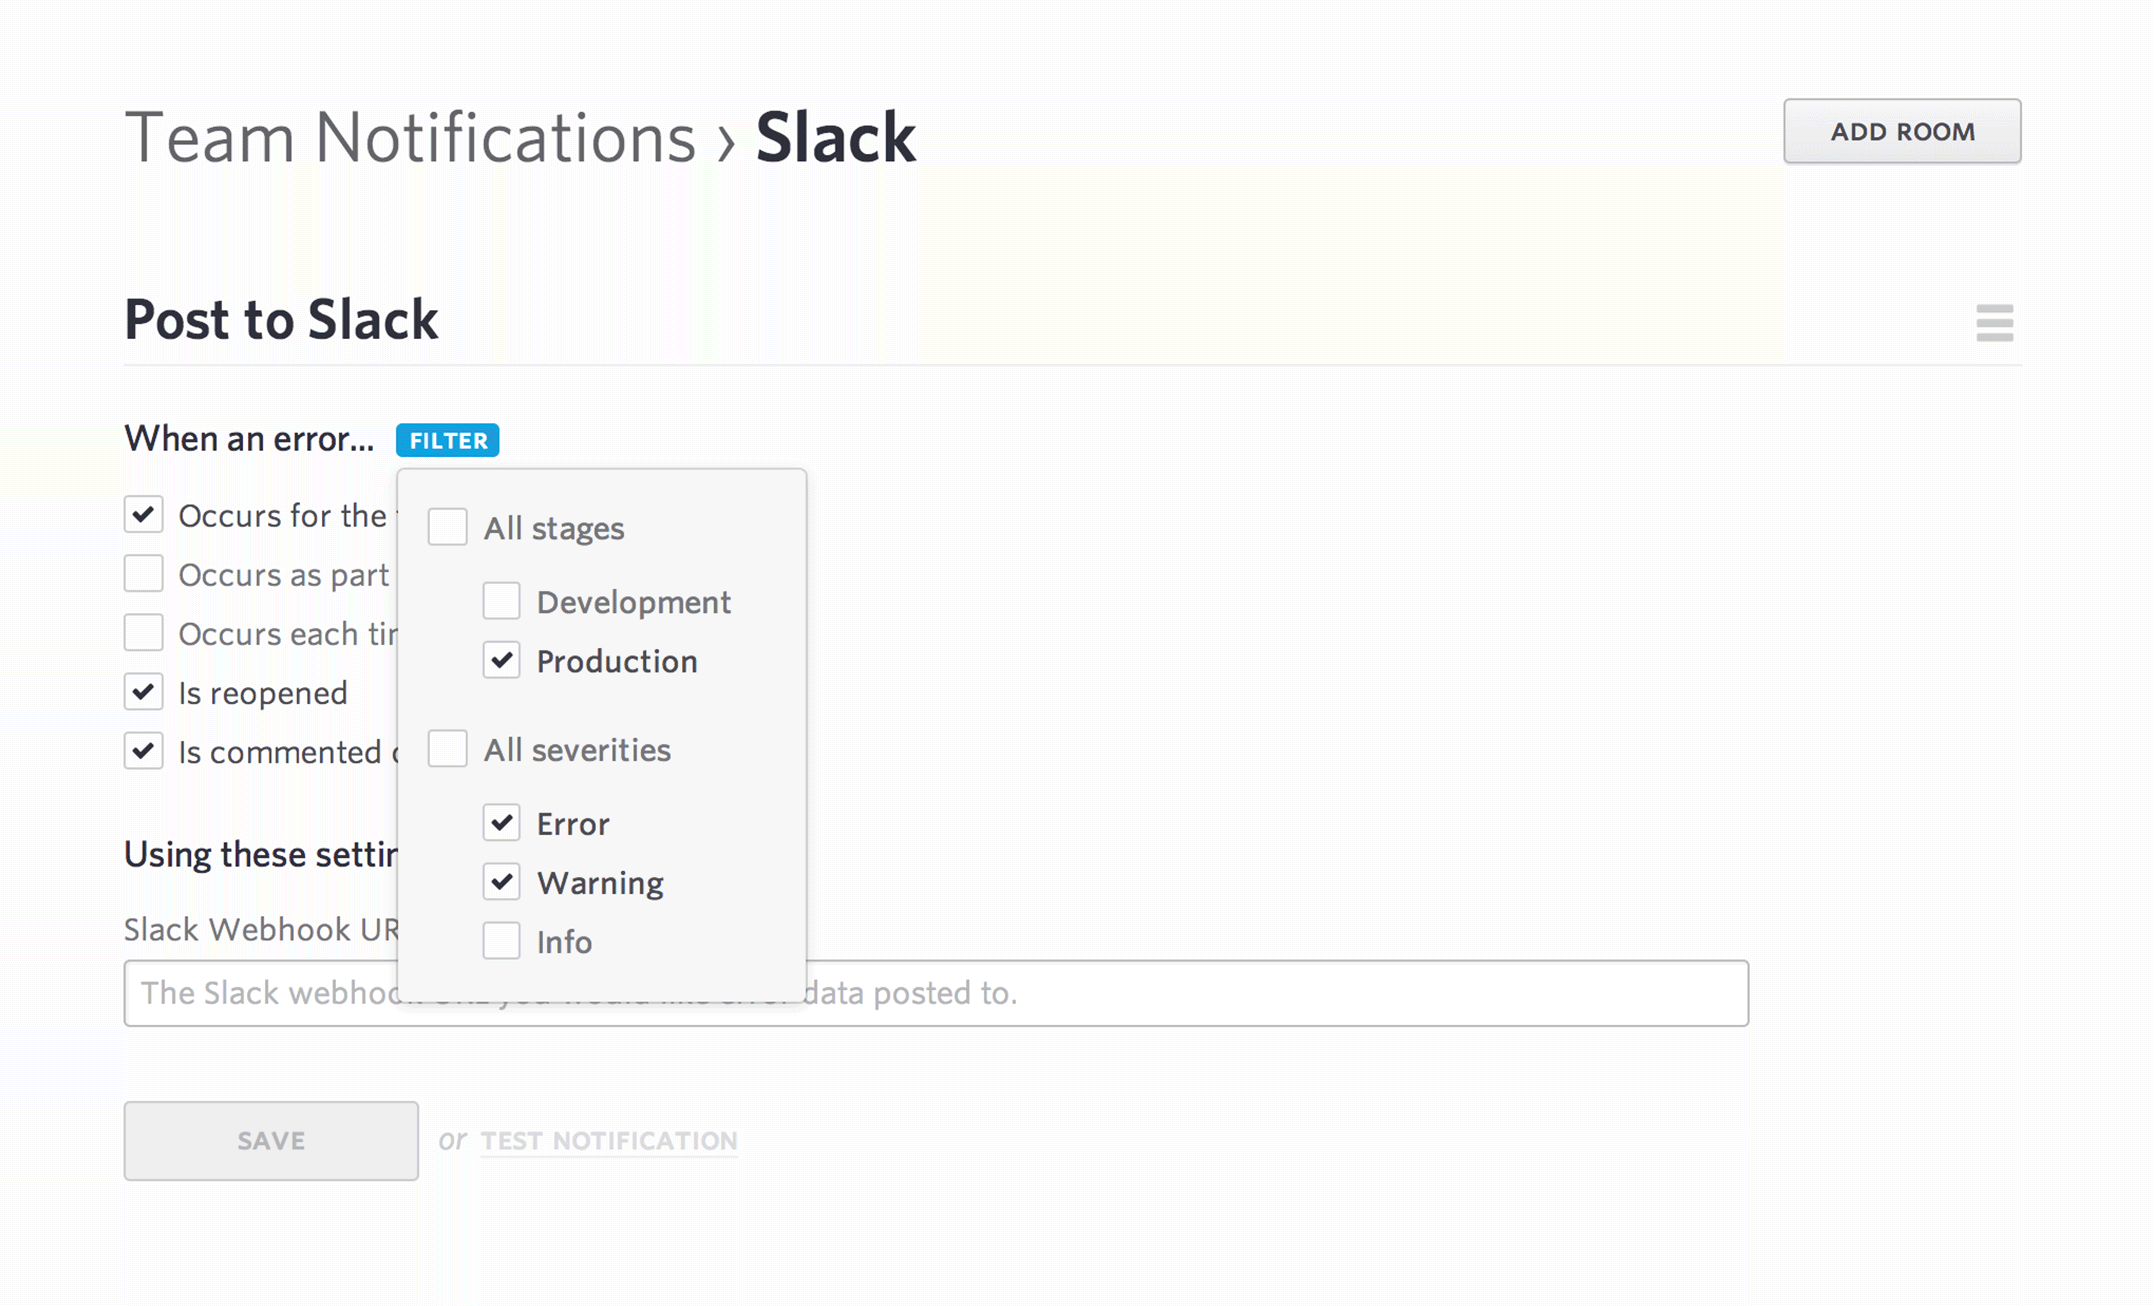 screen shot of the settings panel for slack notifications with filters